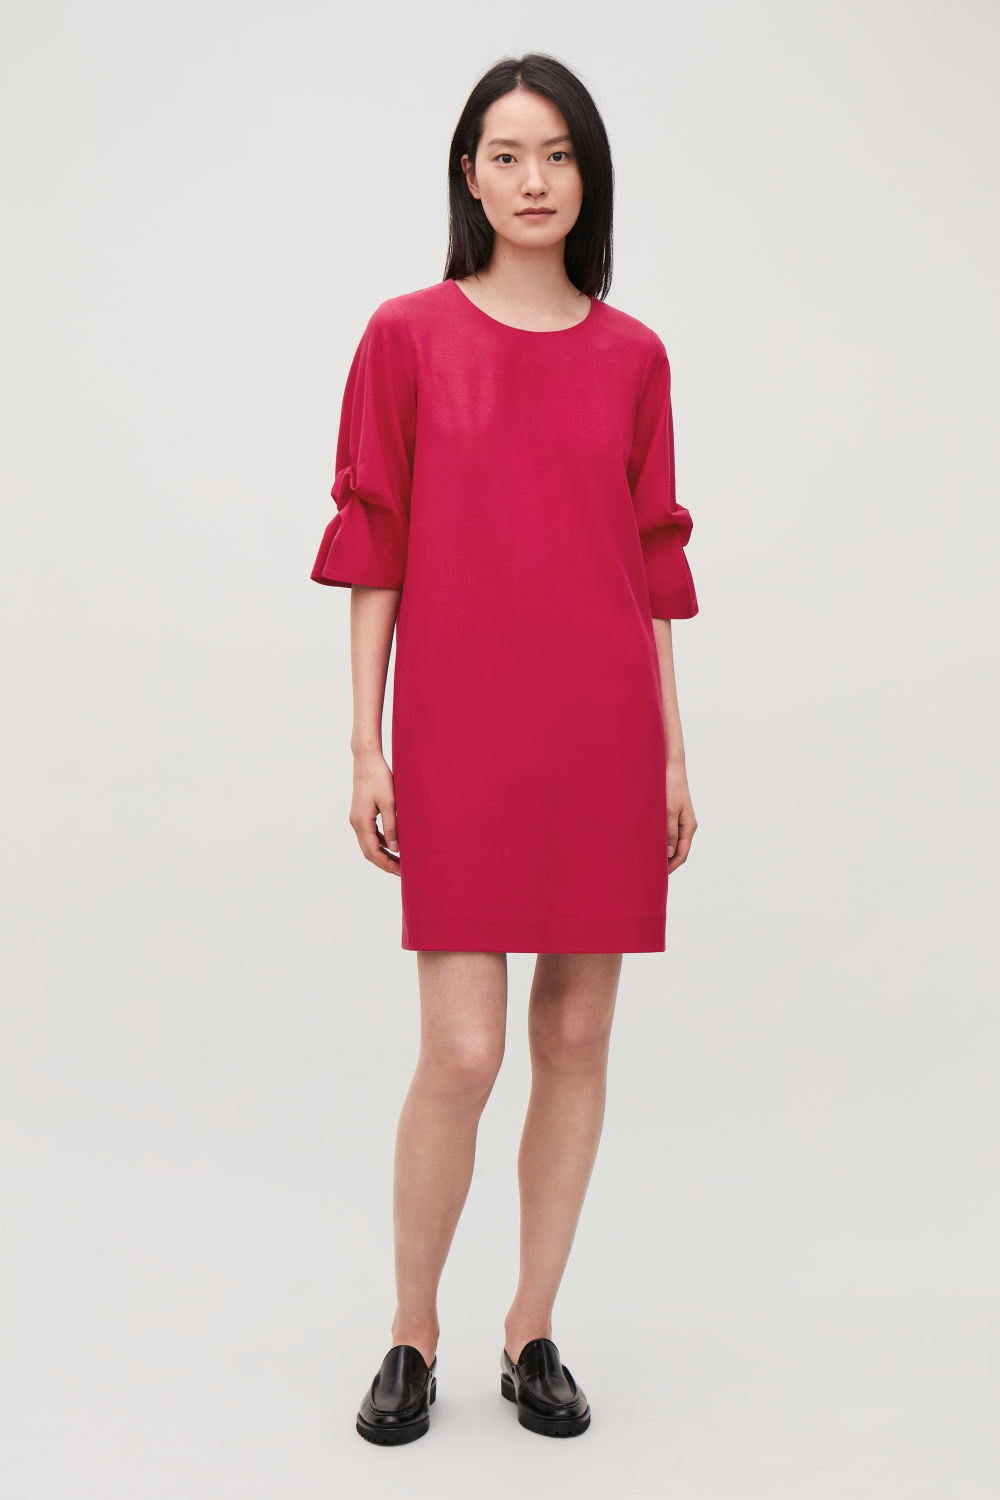 COS DRAPE-SLEEVED WOOL DRESS,Vibrant pink